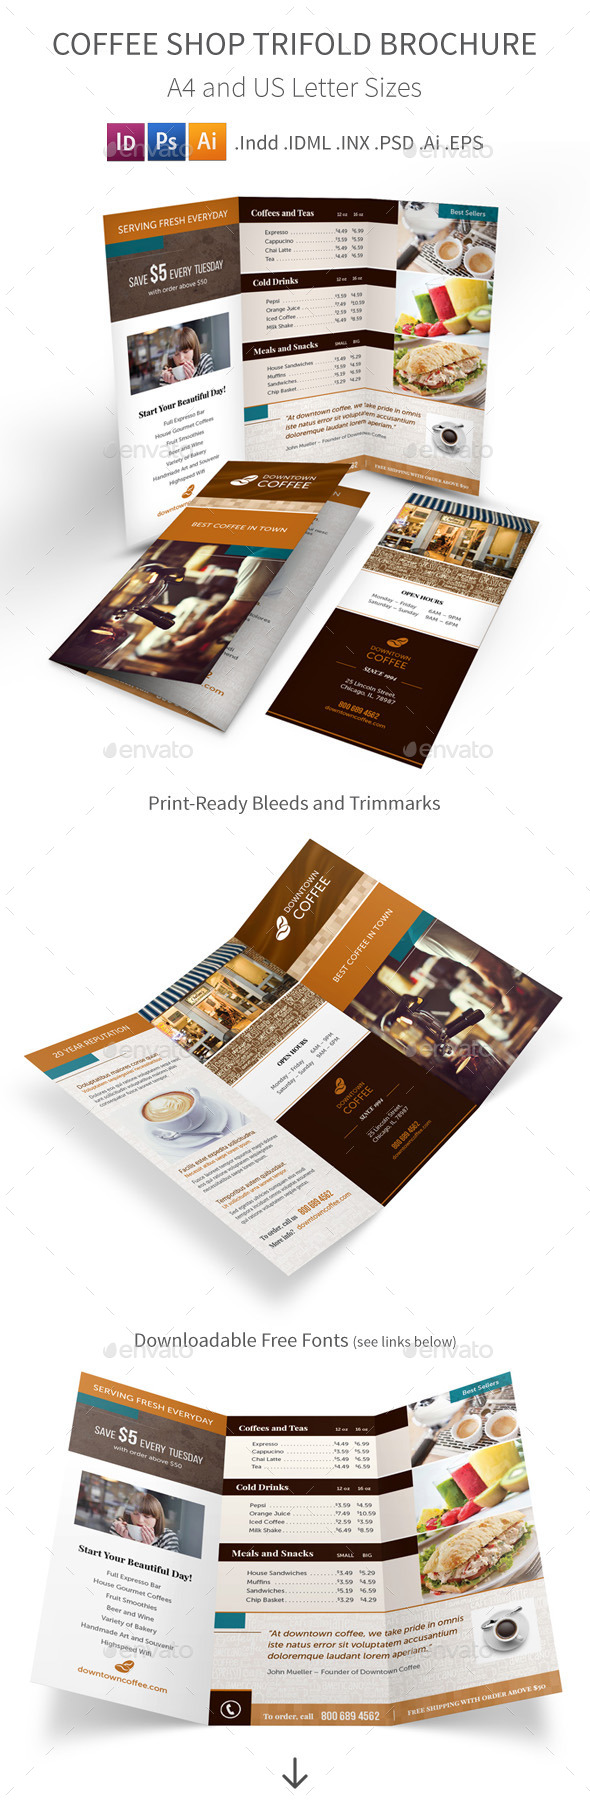 GraphicRiver Coffee Shop Trifold Brochure 8850010